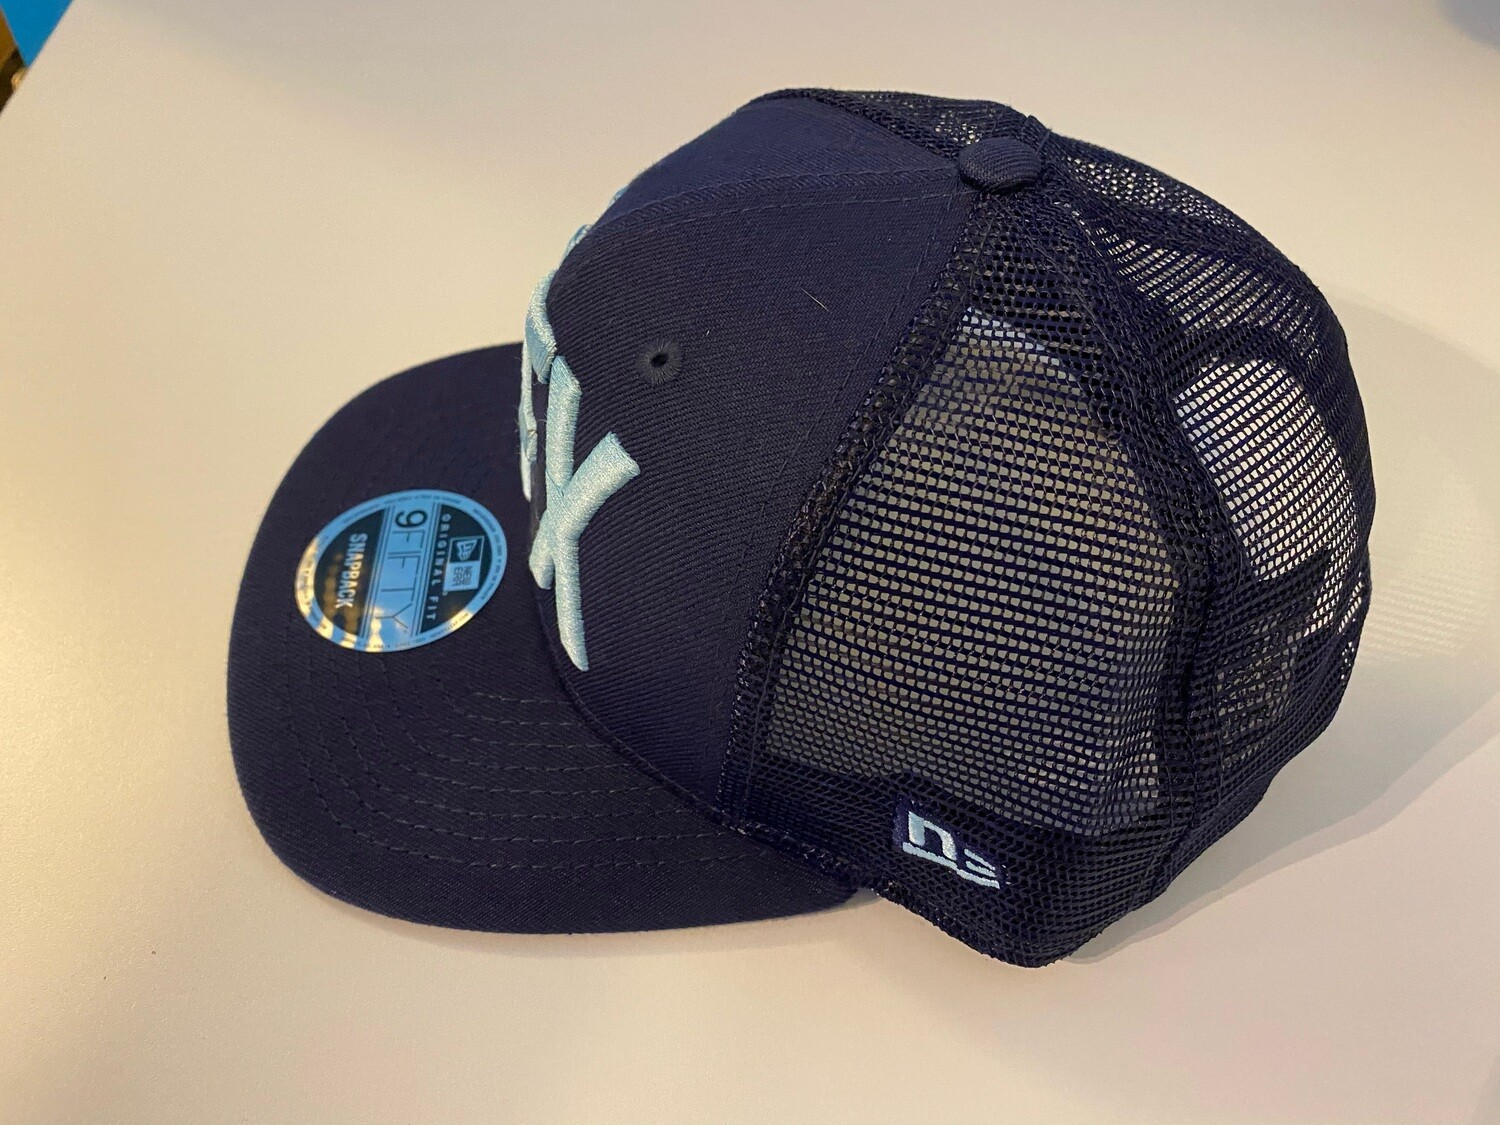 New ERA HFX Street Edition Trucker Cap